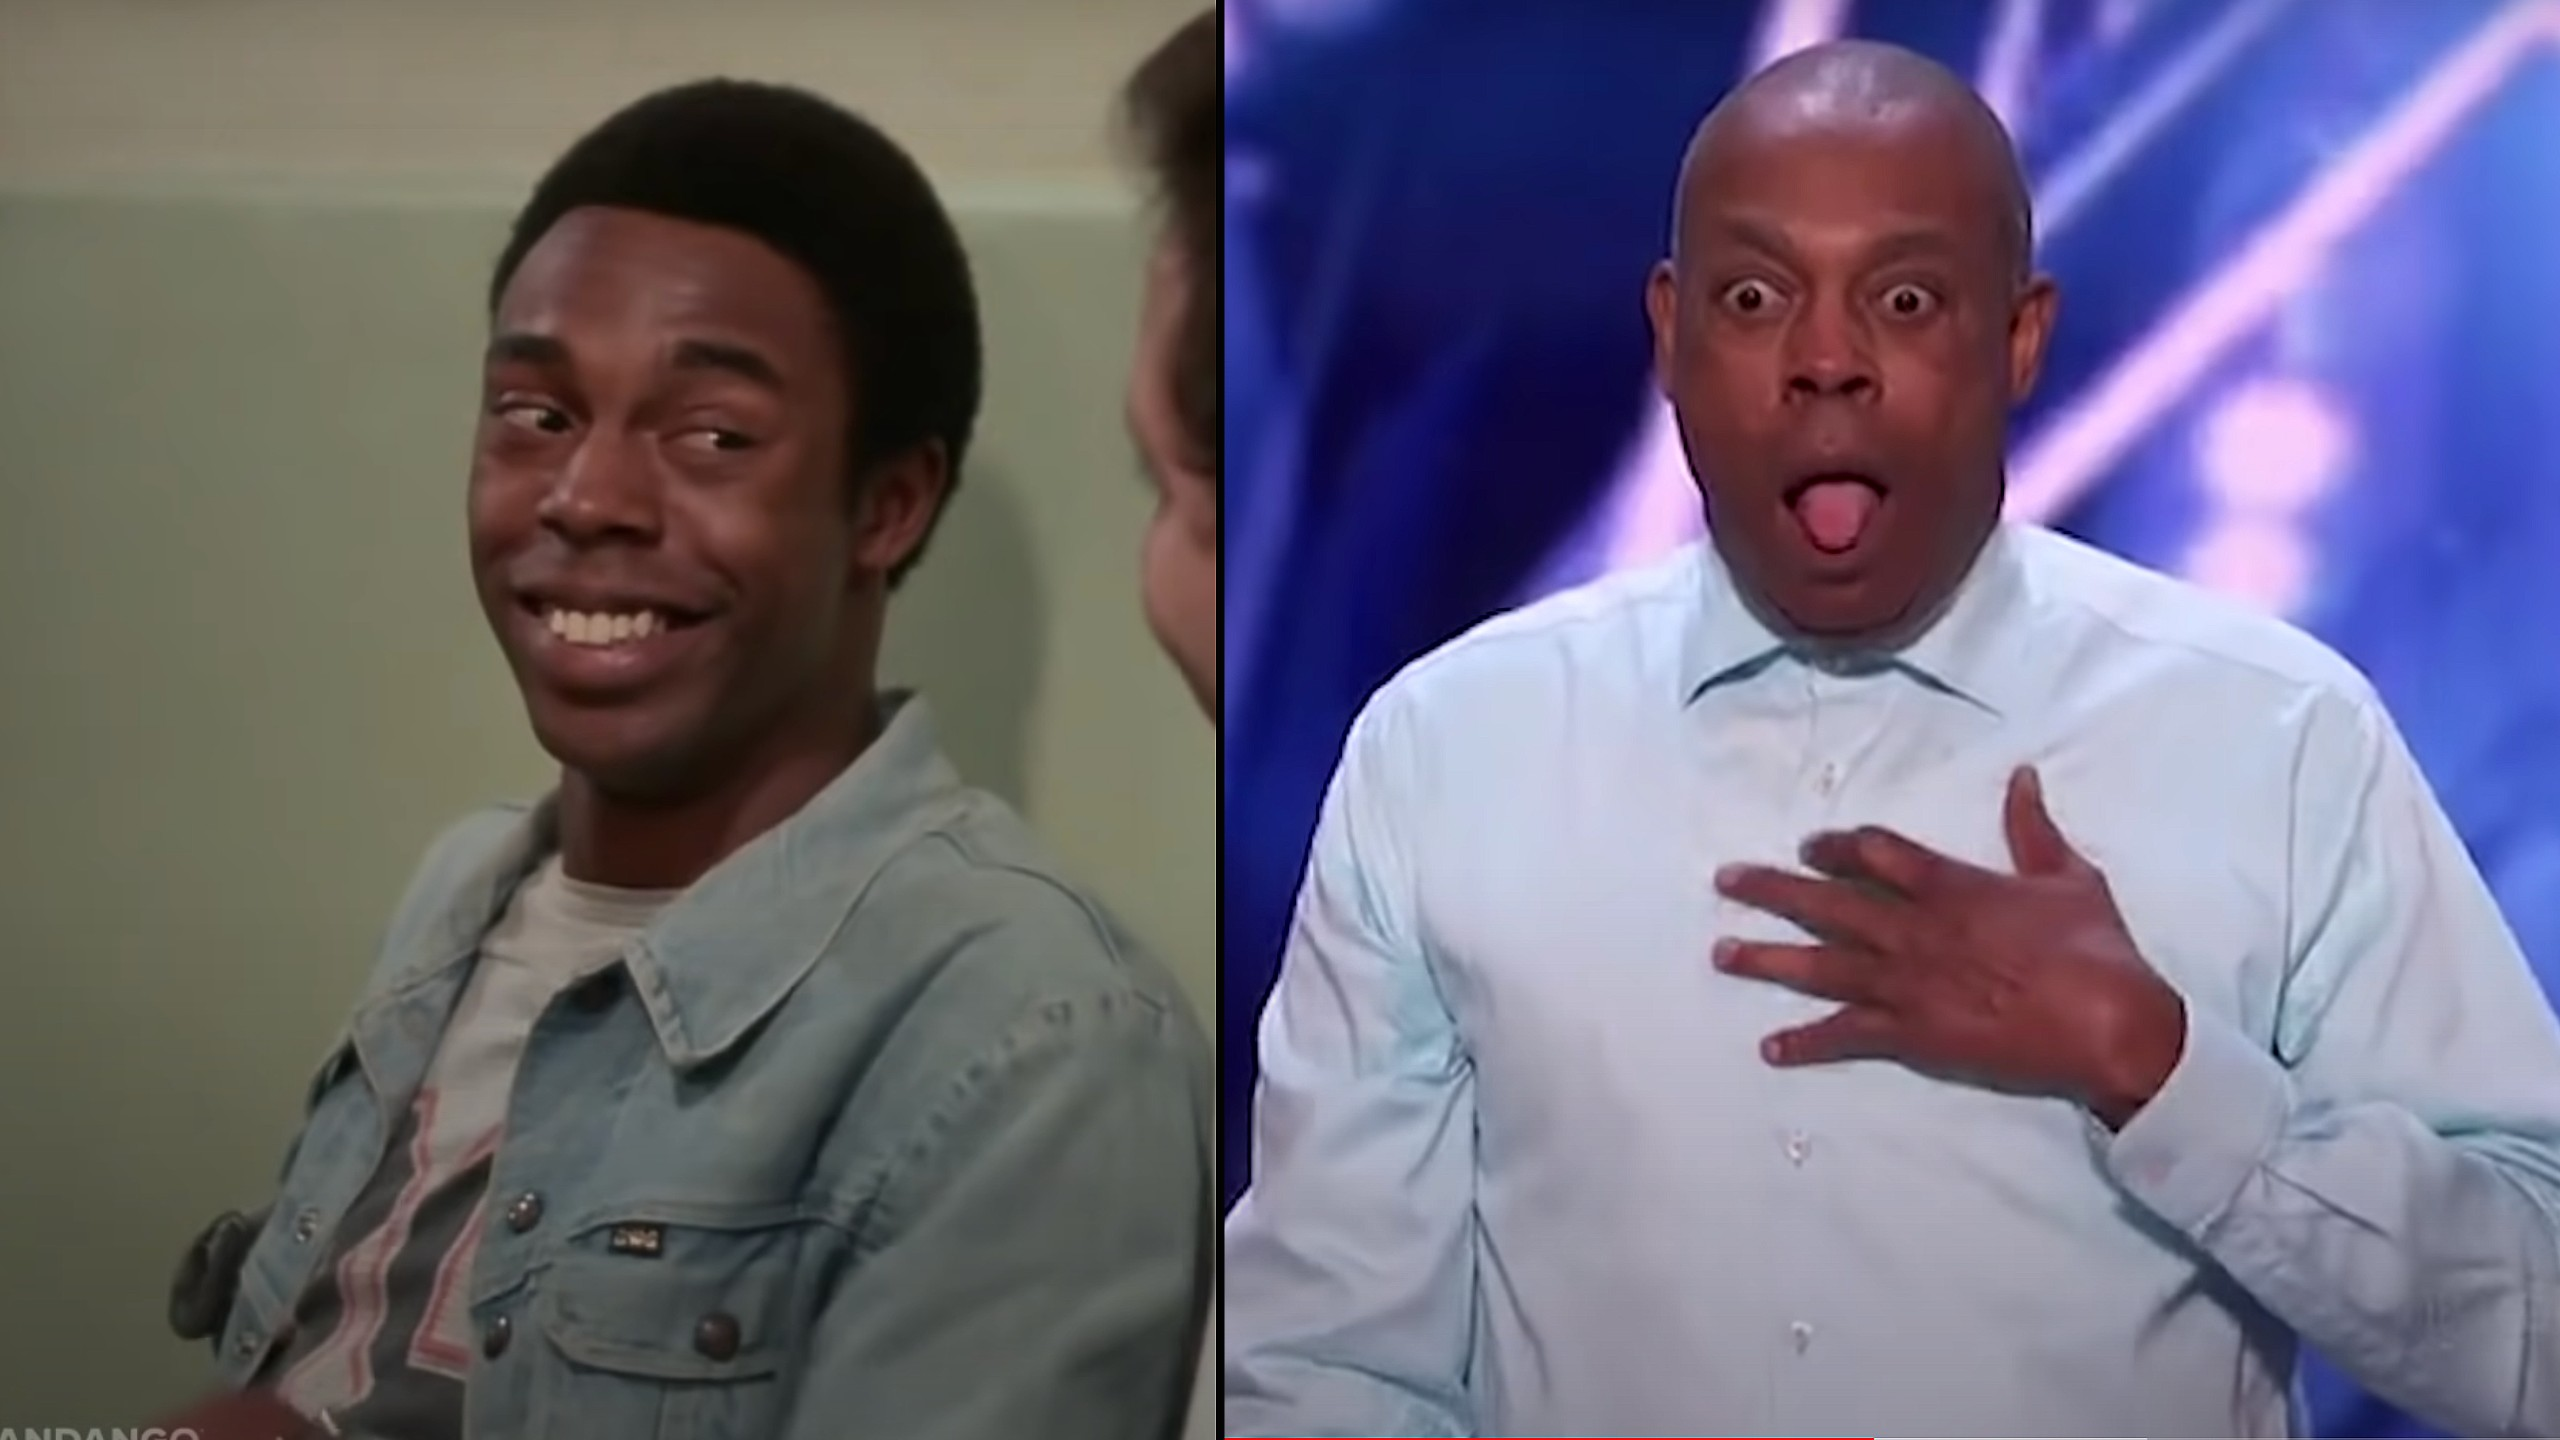 Michael Winslow Makes Epic Return After Taking Time Off to Raise Kids